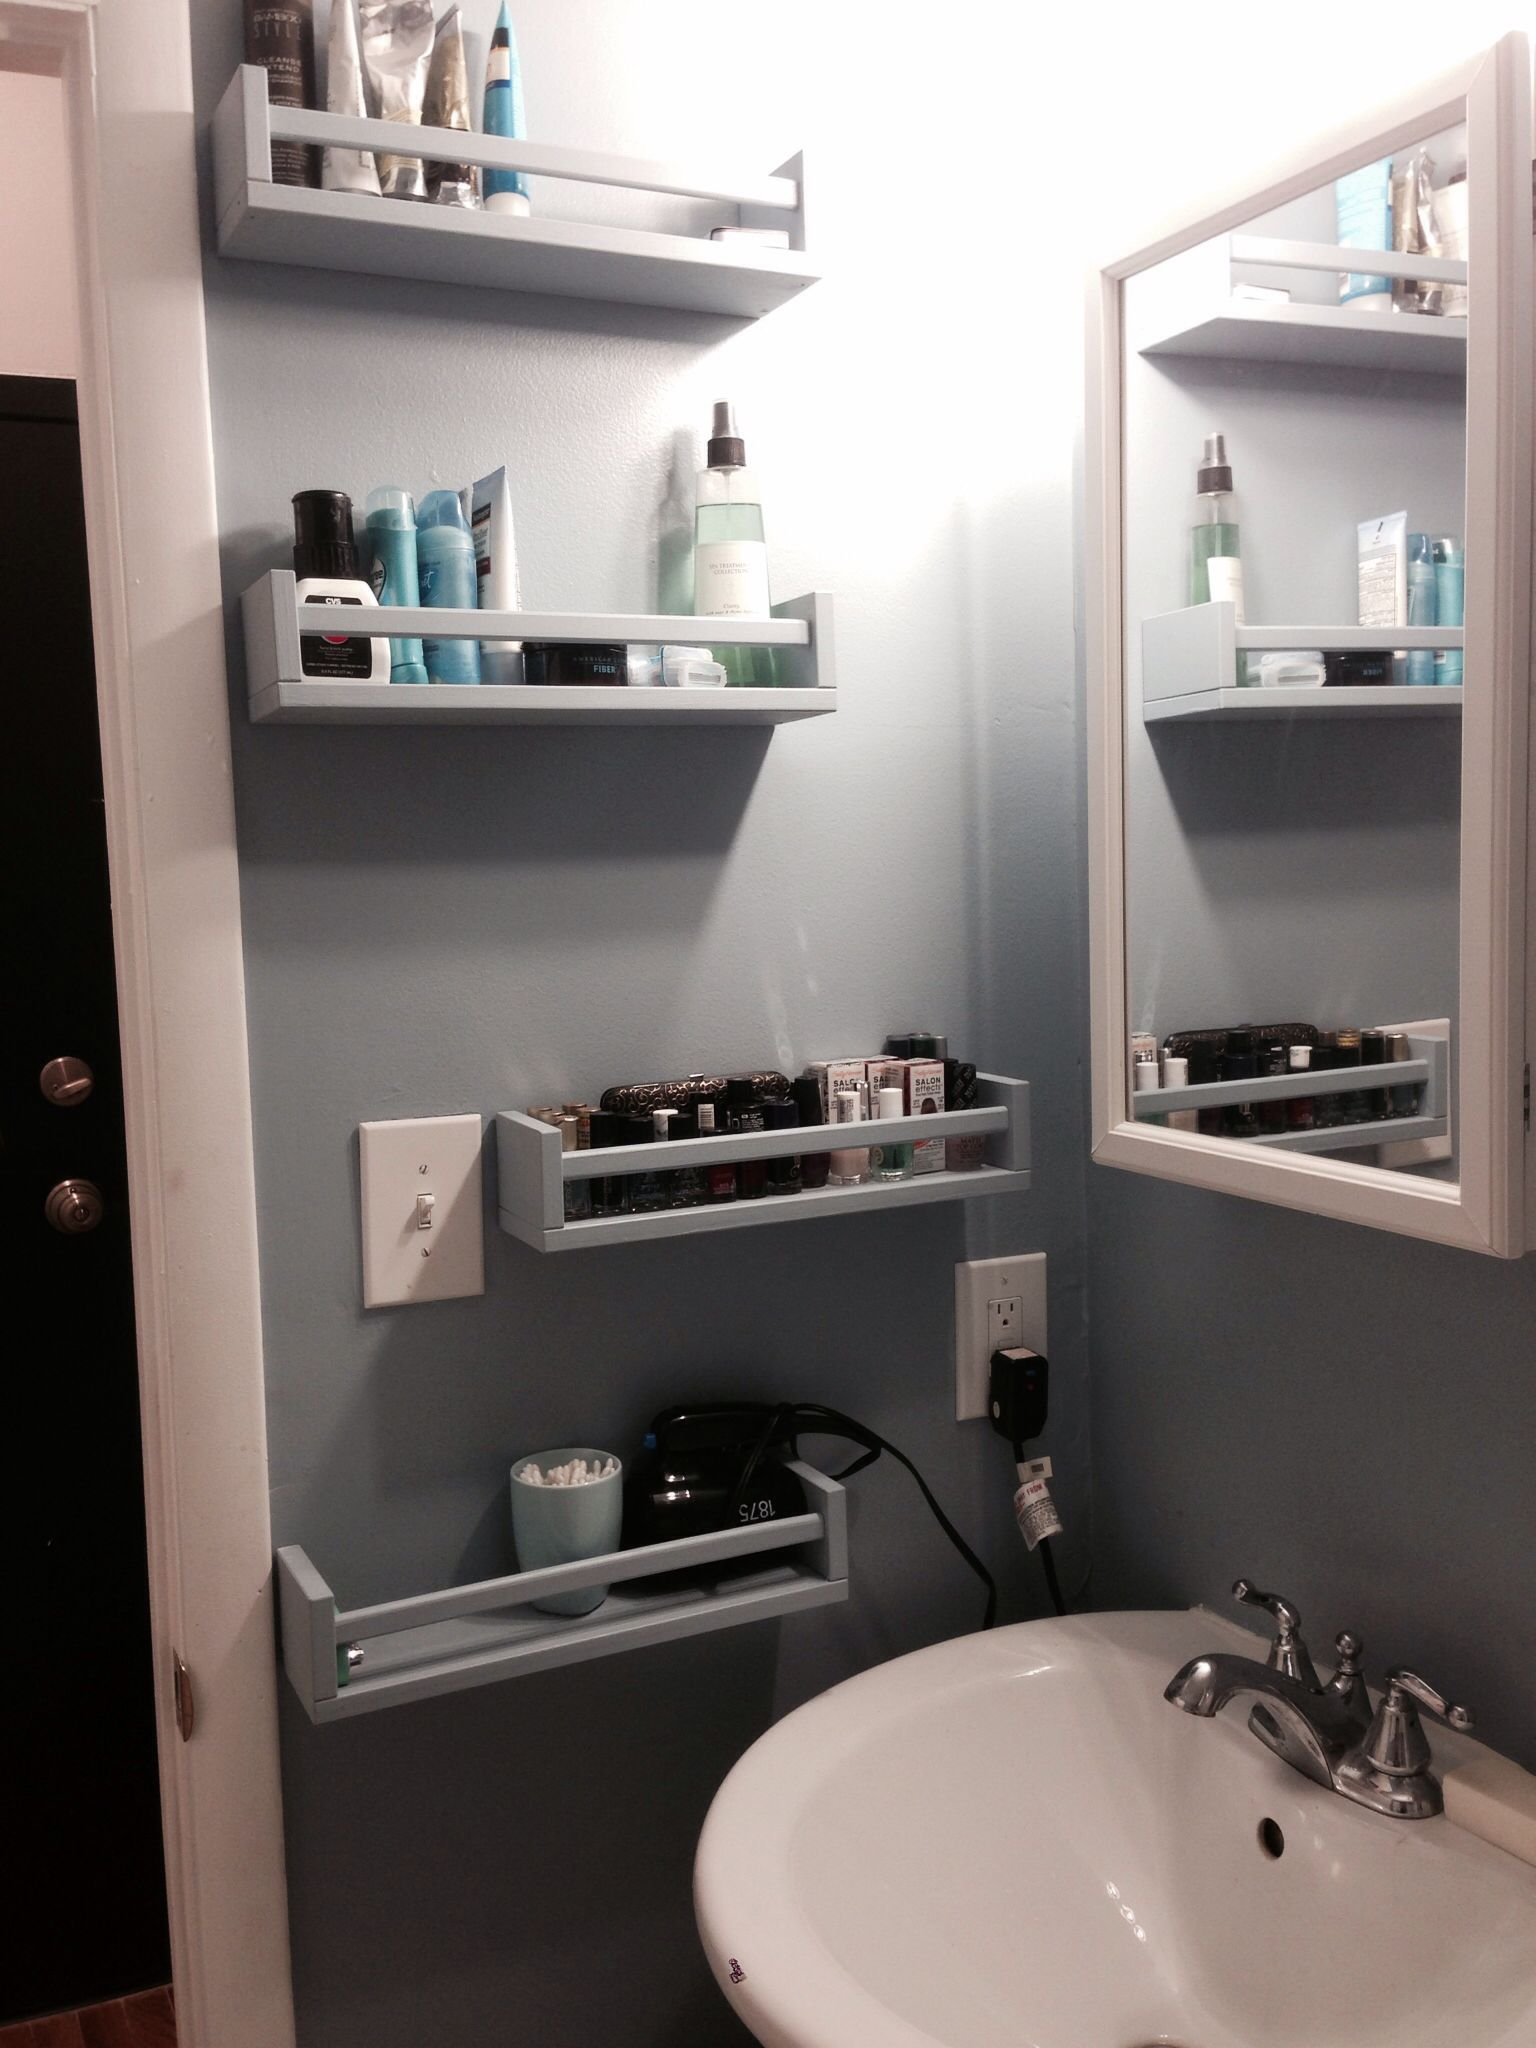 7 Genius Pedestal Sink Storage Ideas for Your Home - Use a Spice Rack